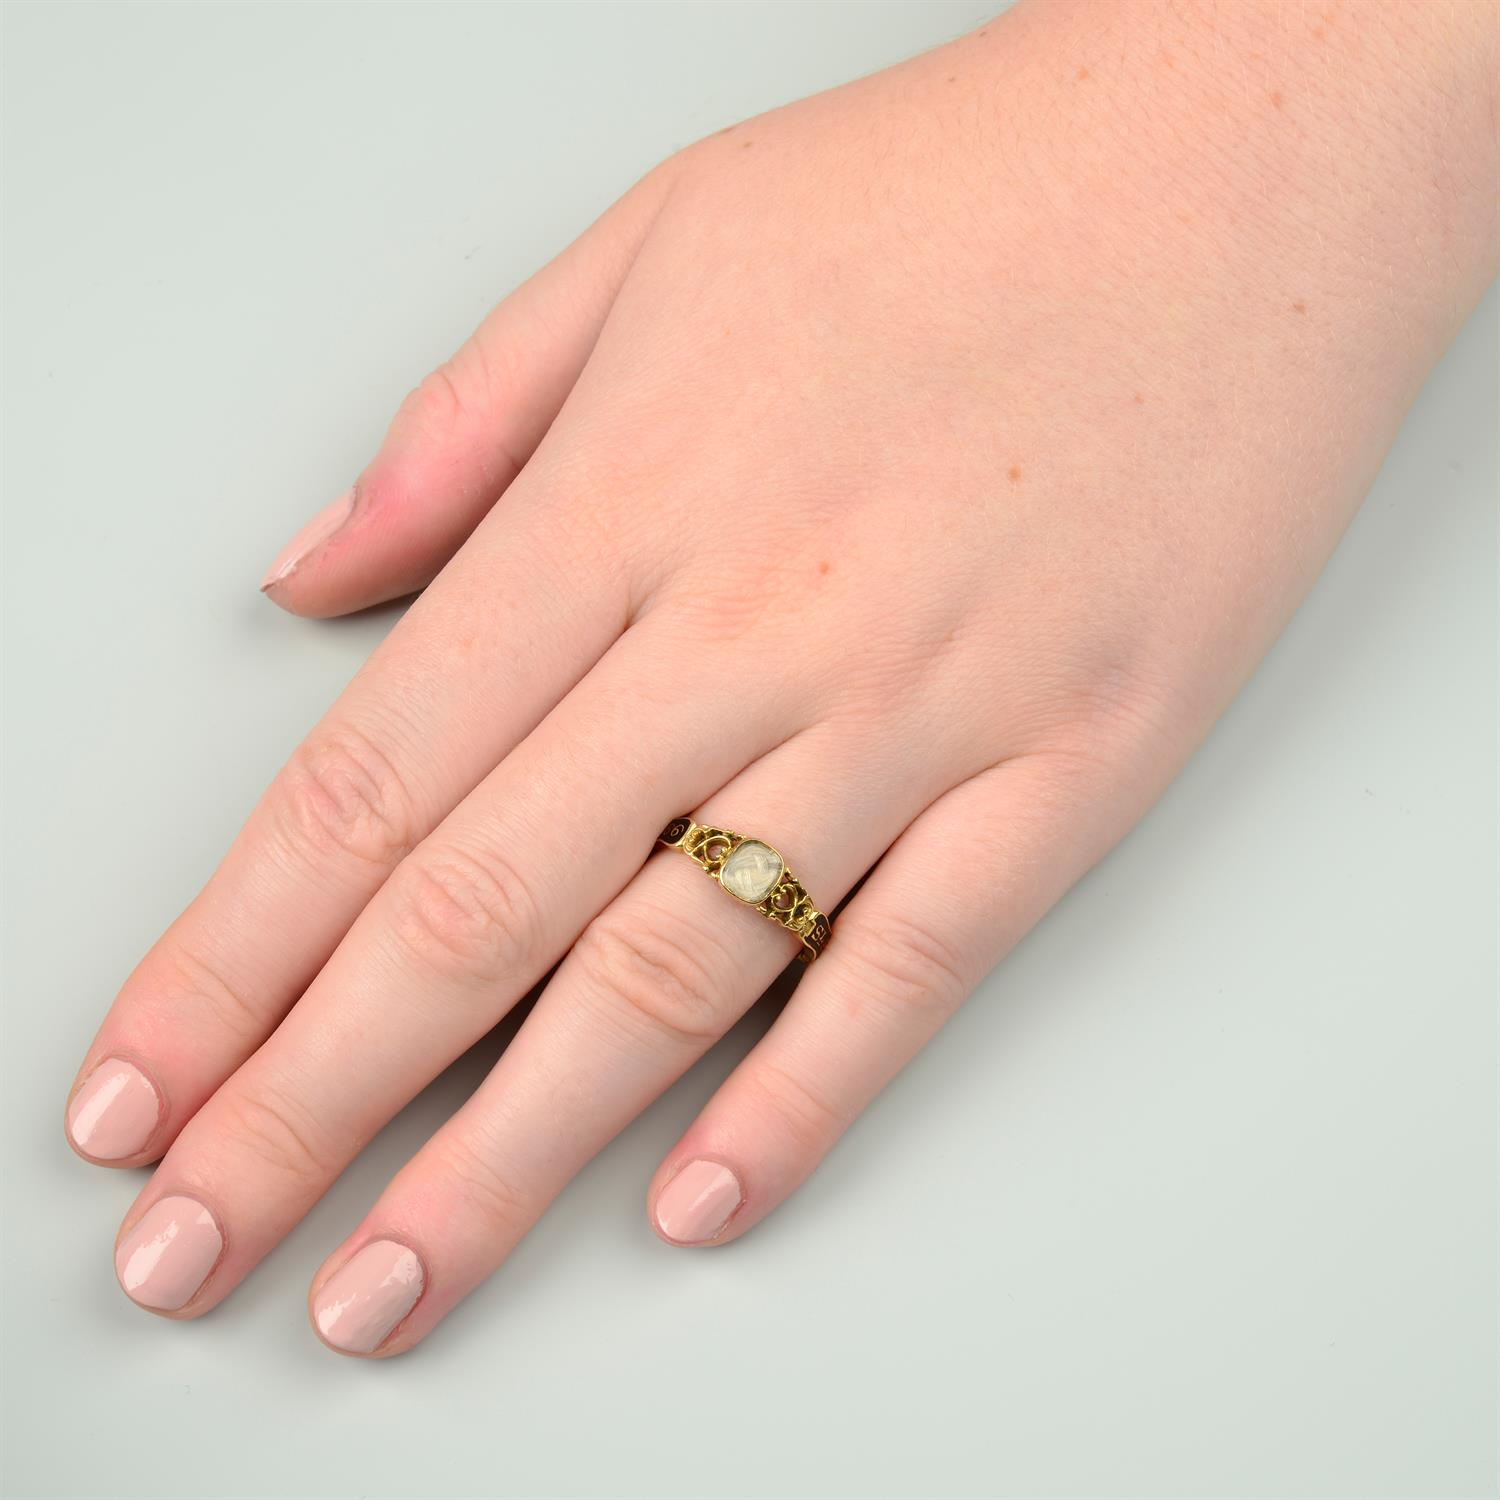 An early Victorian 18ct gold black enamel mourning ring, with pierced scrolling sides and woven - Image 7 of 7